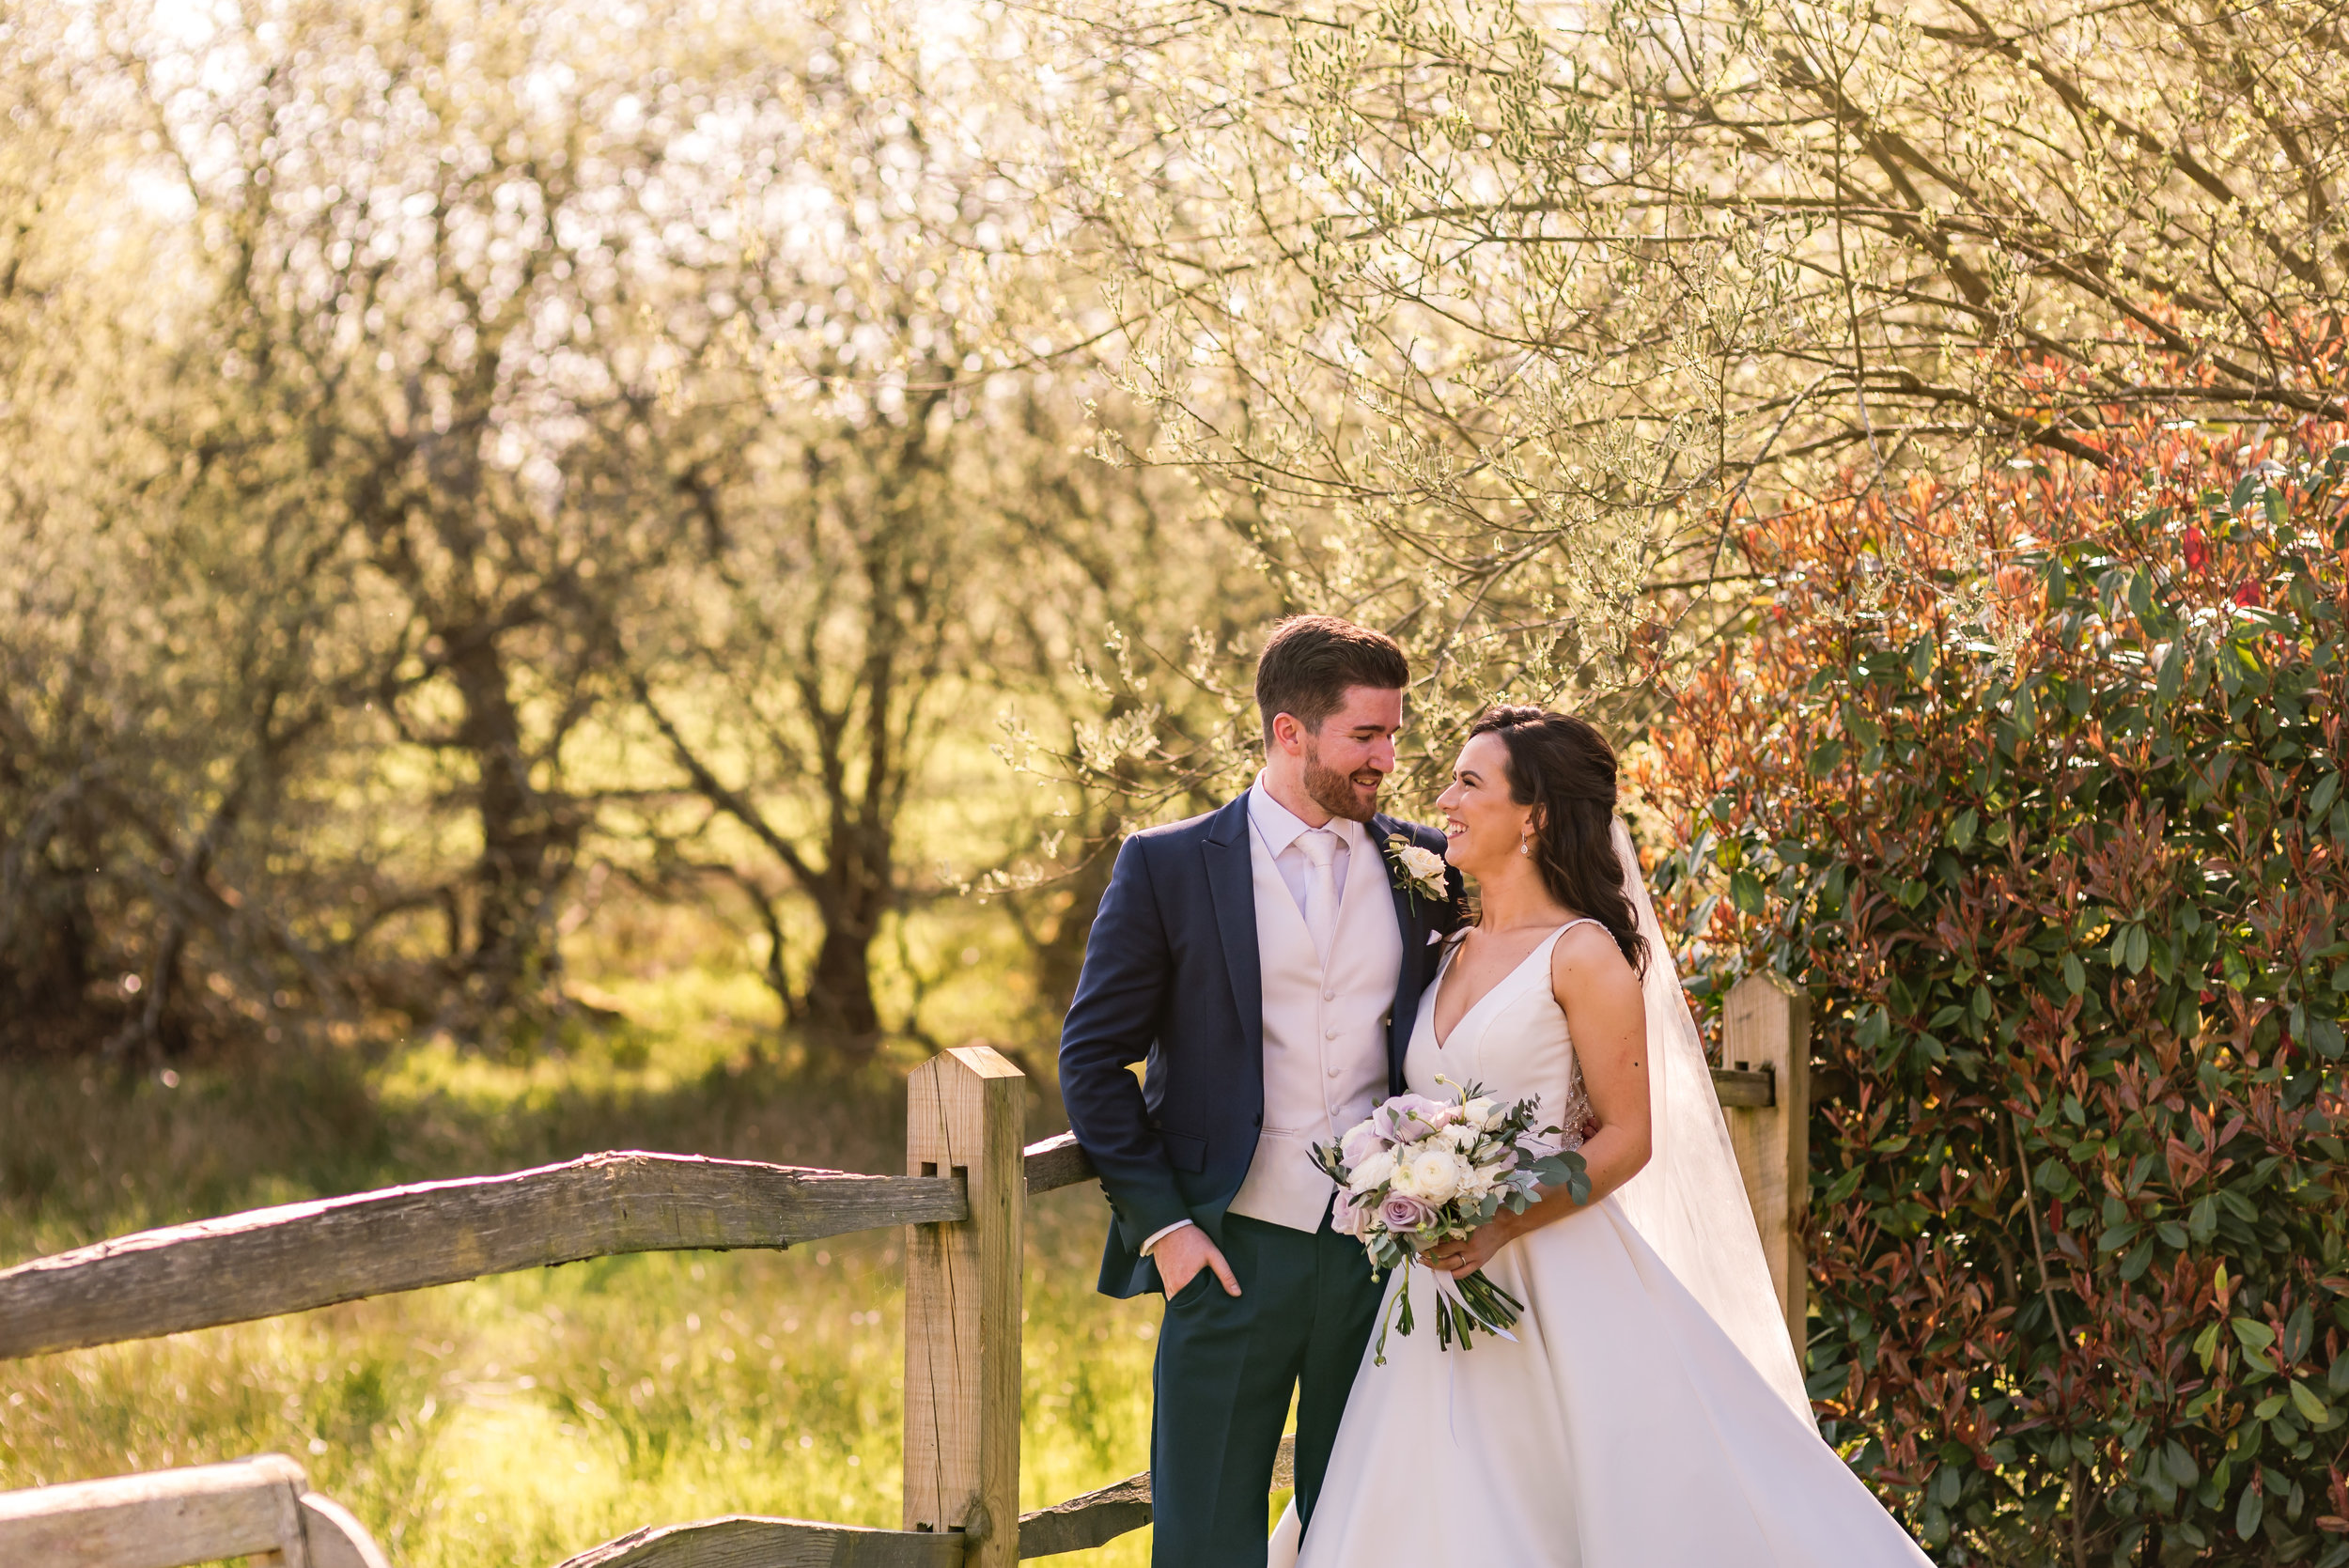 Sarah-Fishlock-Photography : Hampshire-wedding-photographer-hampshire : fleet-wedding-photographer-fleet : Millbridge-Court-Wedding-Photographer : Millbridge-Court-Wedding-Venue : Surrey-wedding-venue-954.jpg